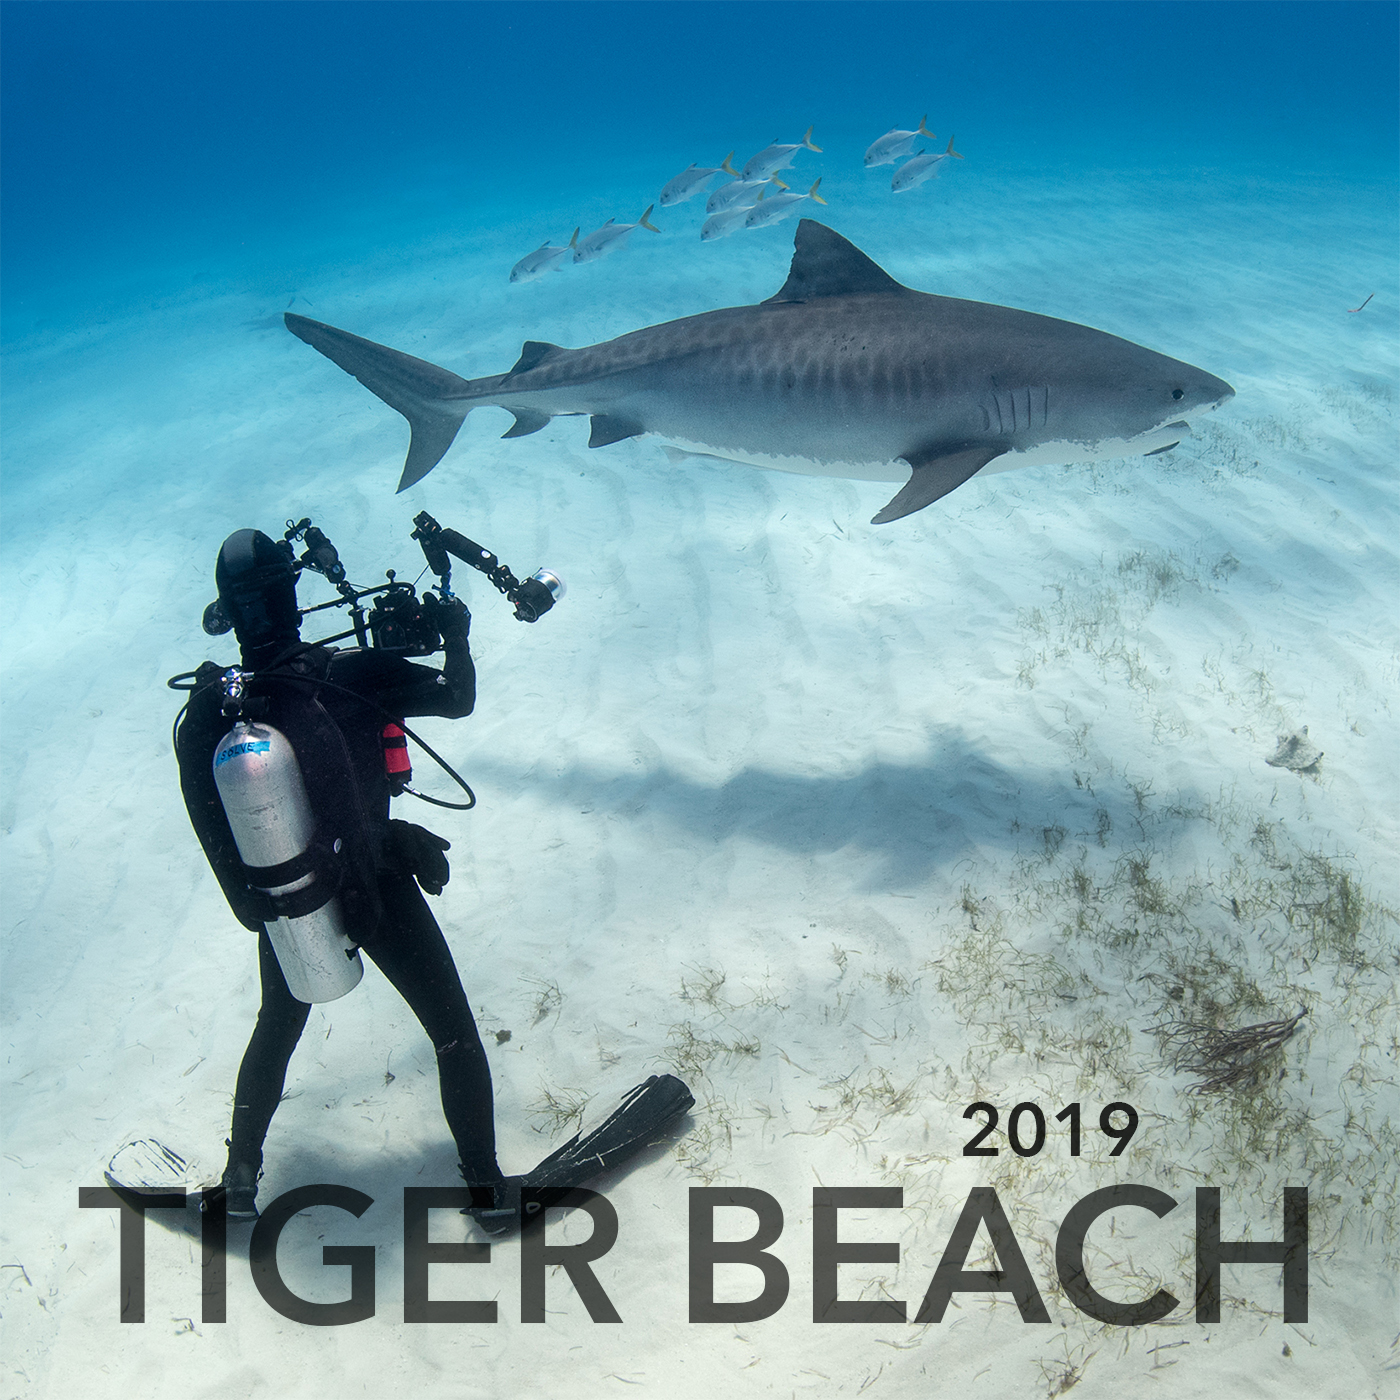 Tiger Beach Expedition Feb 2019